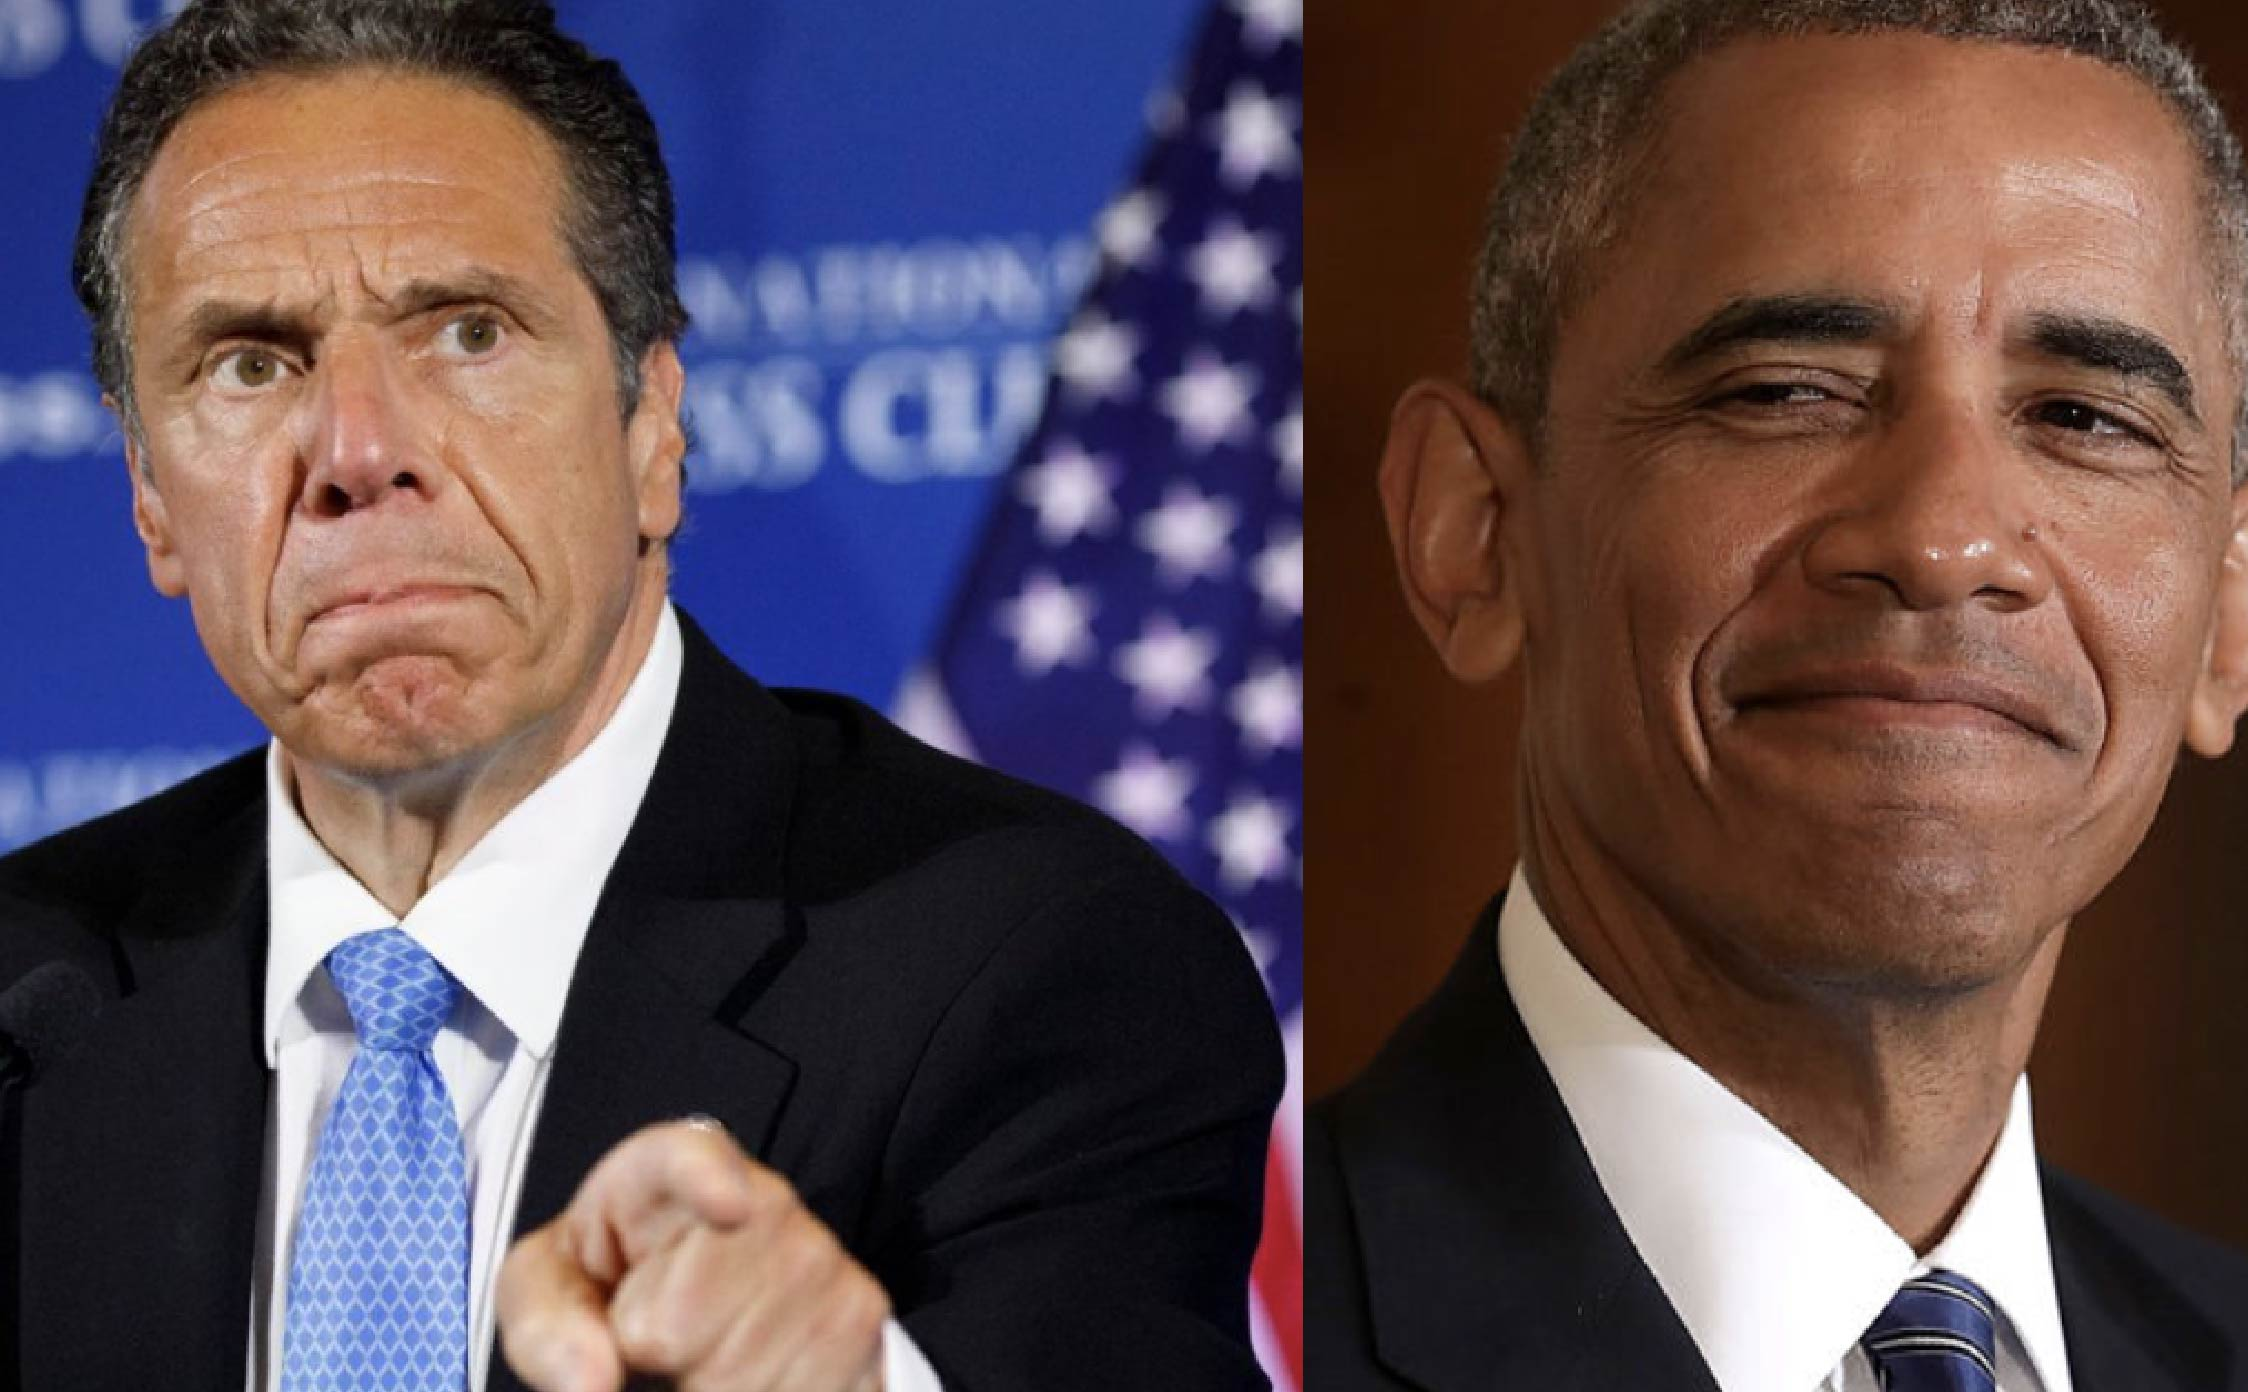 Explosive Theory Emerges on Why Cuomo is Being Eaten Alive By the Left - Hint: Obama